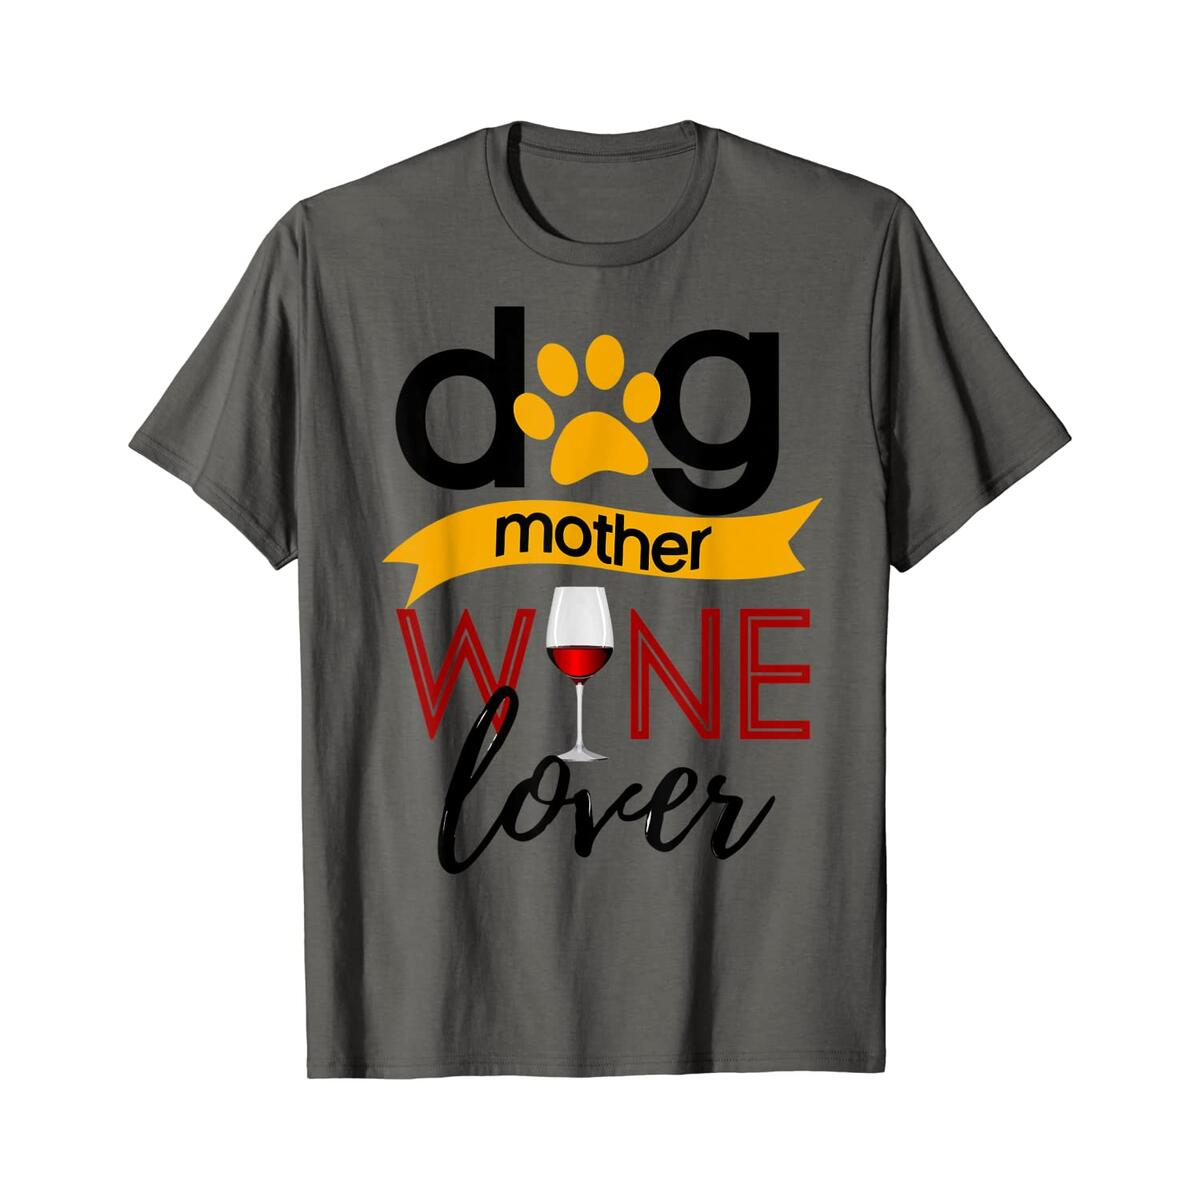 Dog Mother Wine Lover funny women's shirt